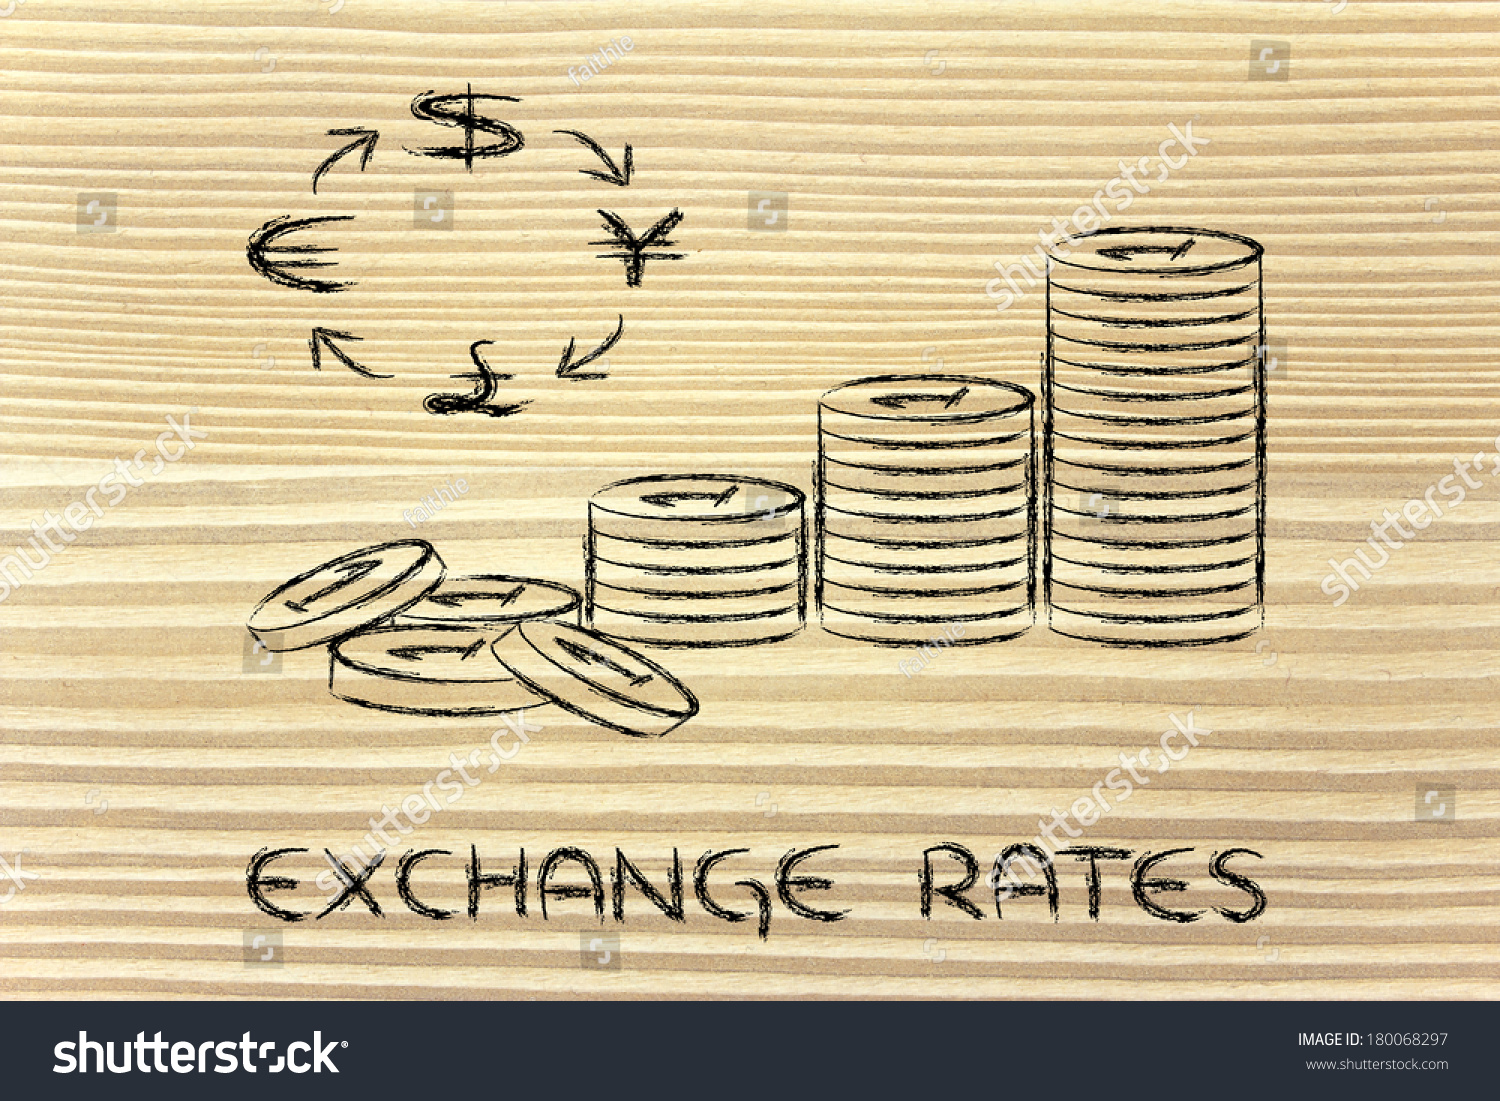 Concept exchange rates coins currency symbols stock illustration concept of exchange rates coins and currency symbols biocorpaavc